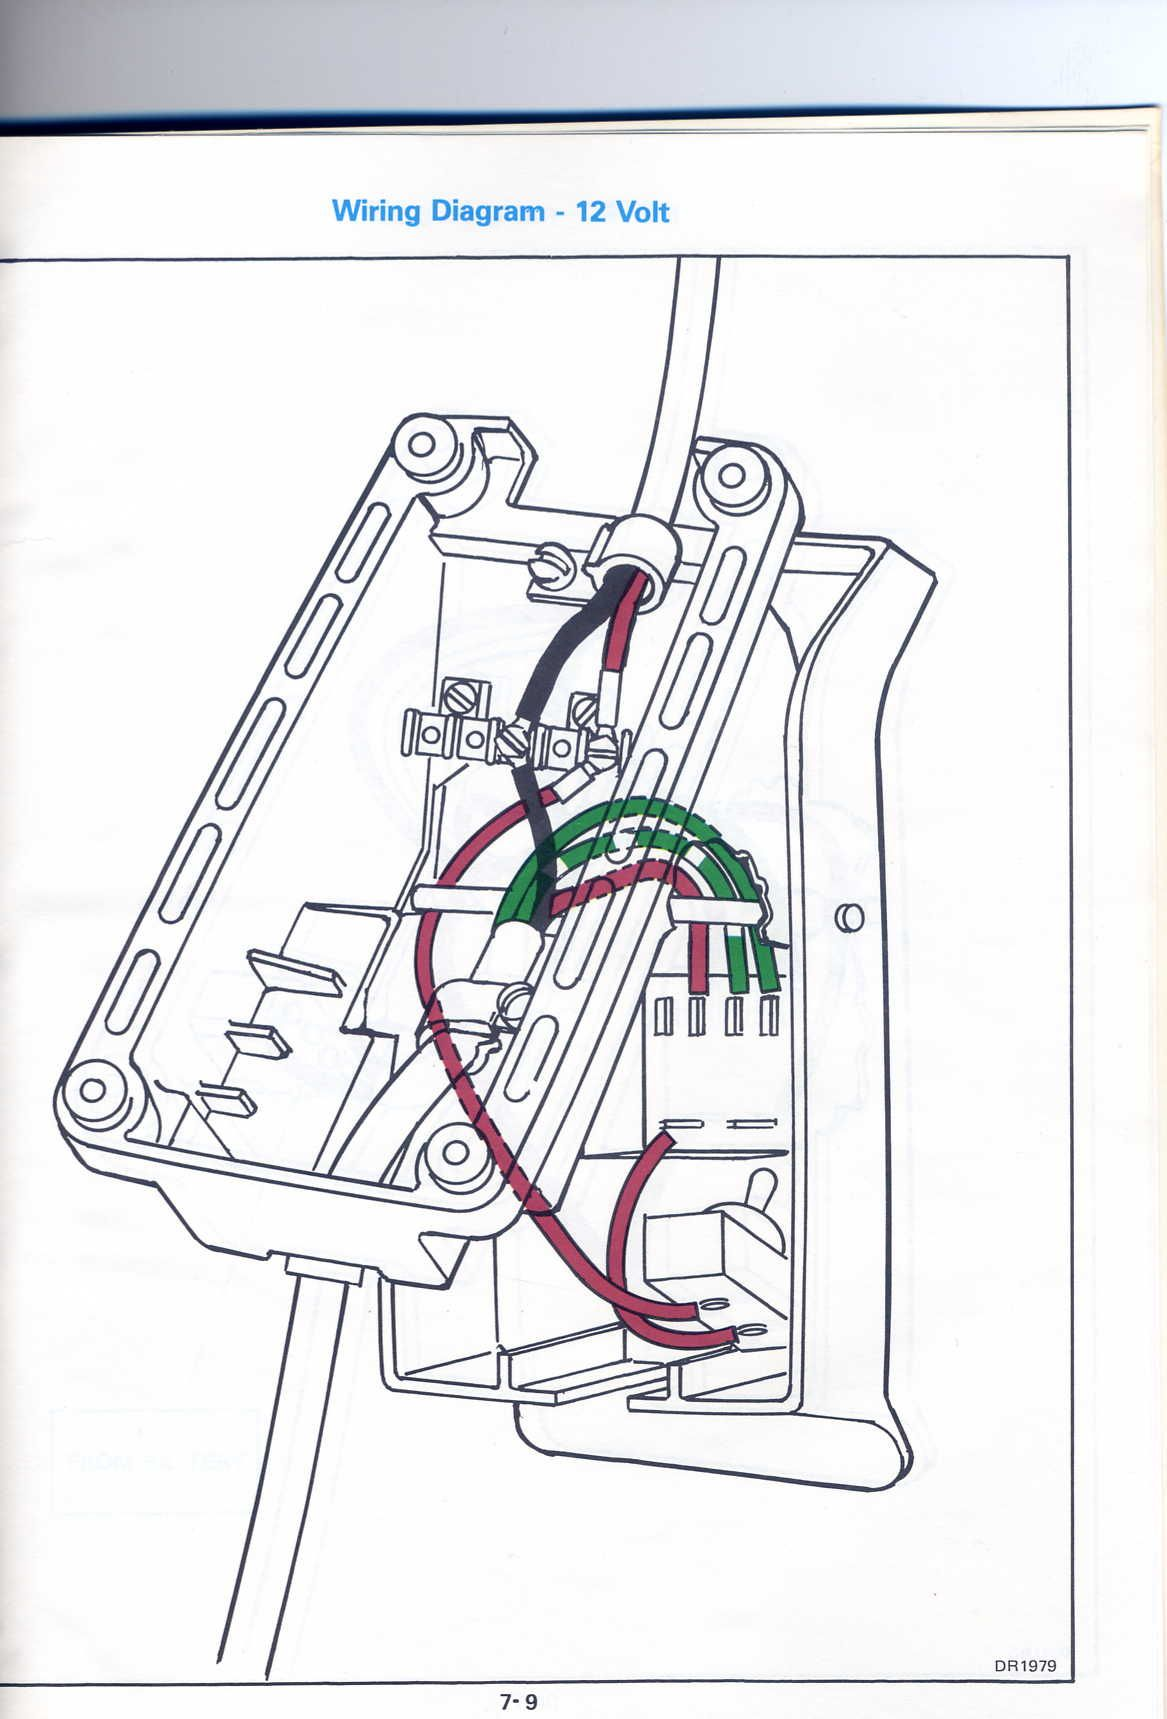 motorguide trolling motor wiring diagram trying to repair a friends rh pinterest com Motorguide Speed Control Wiring 12V 12V Battery Wiring Diagram